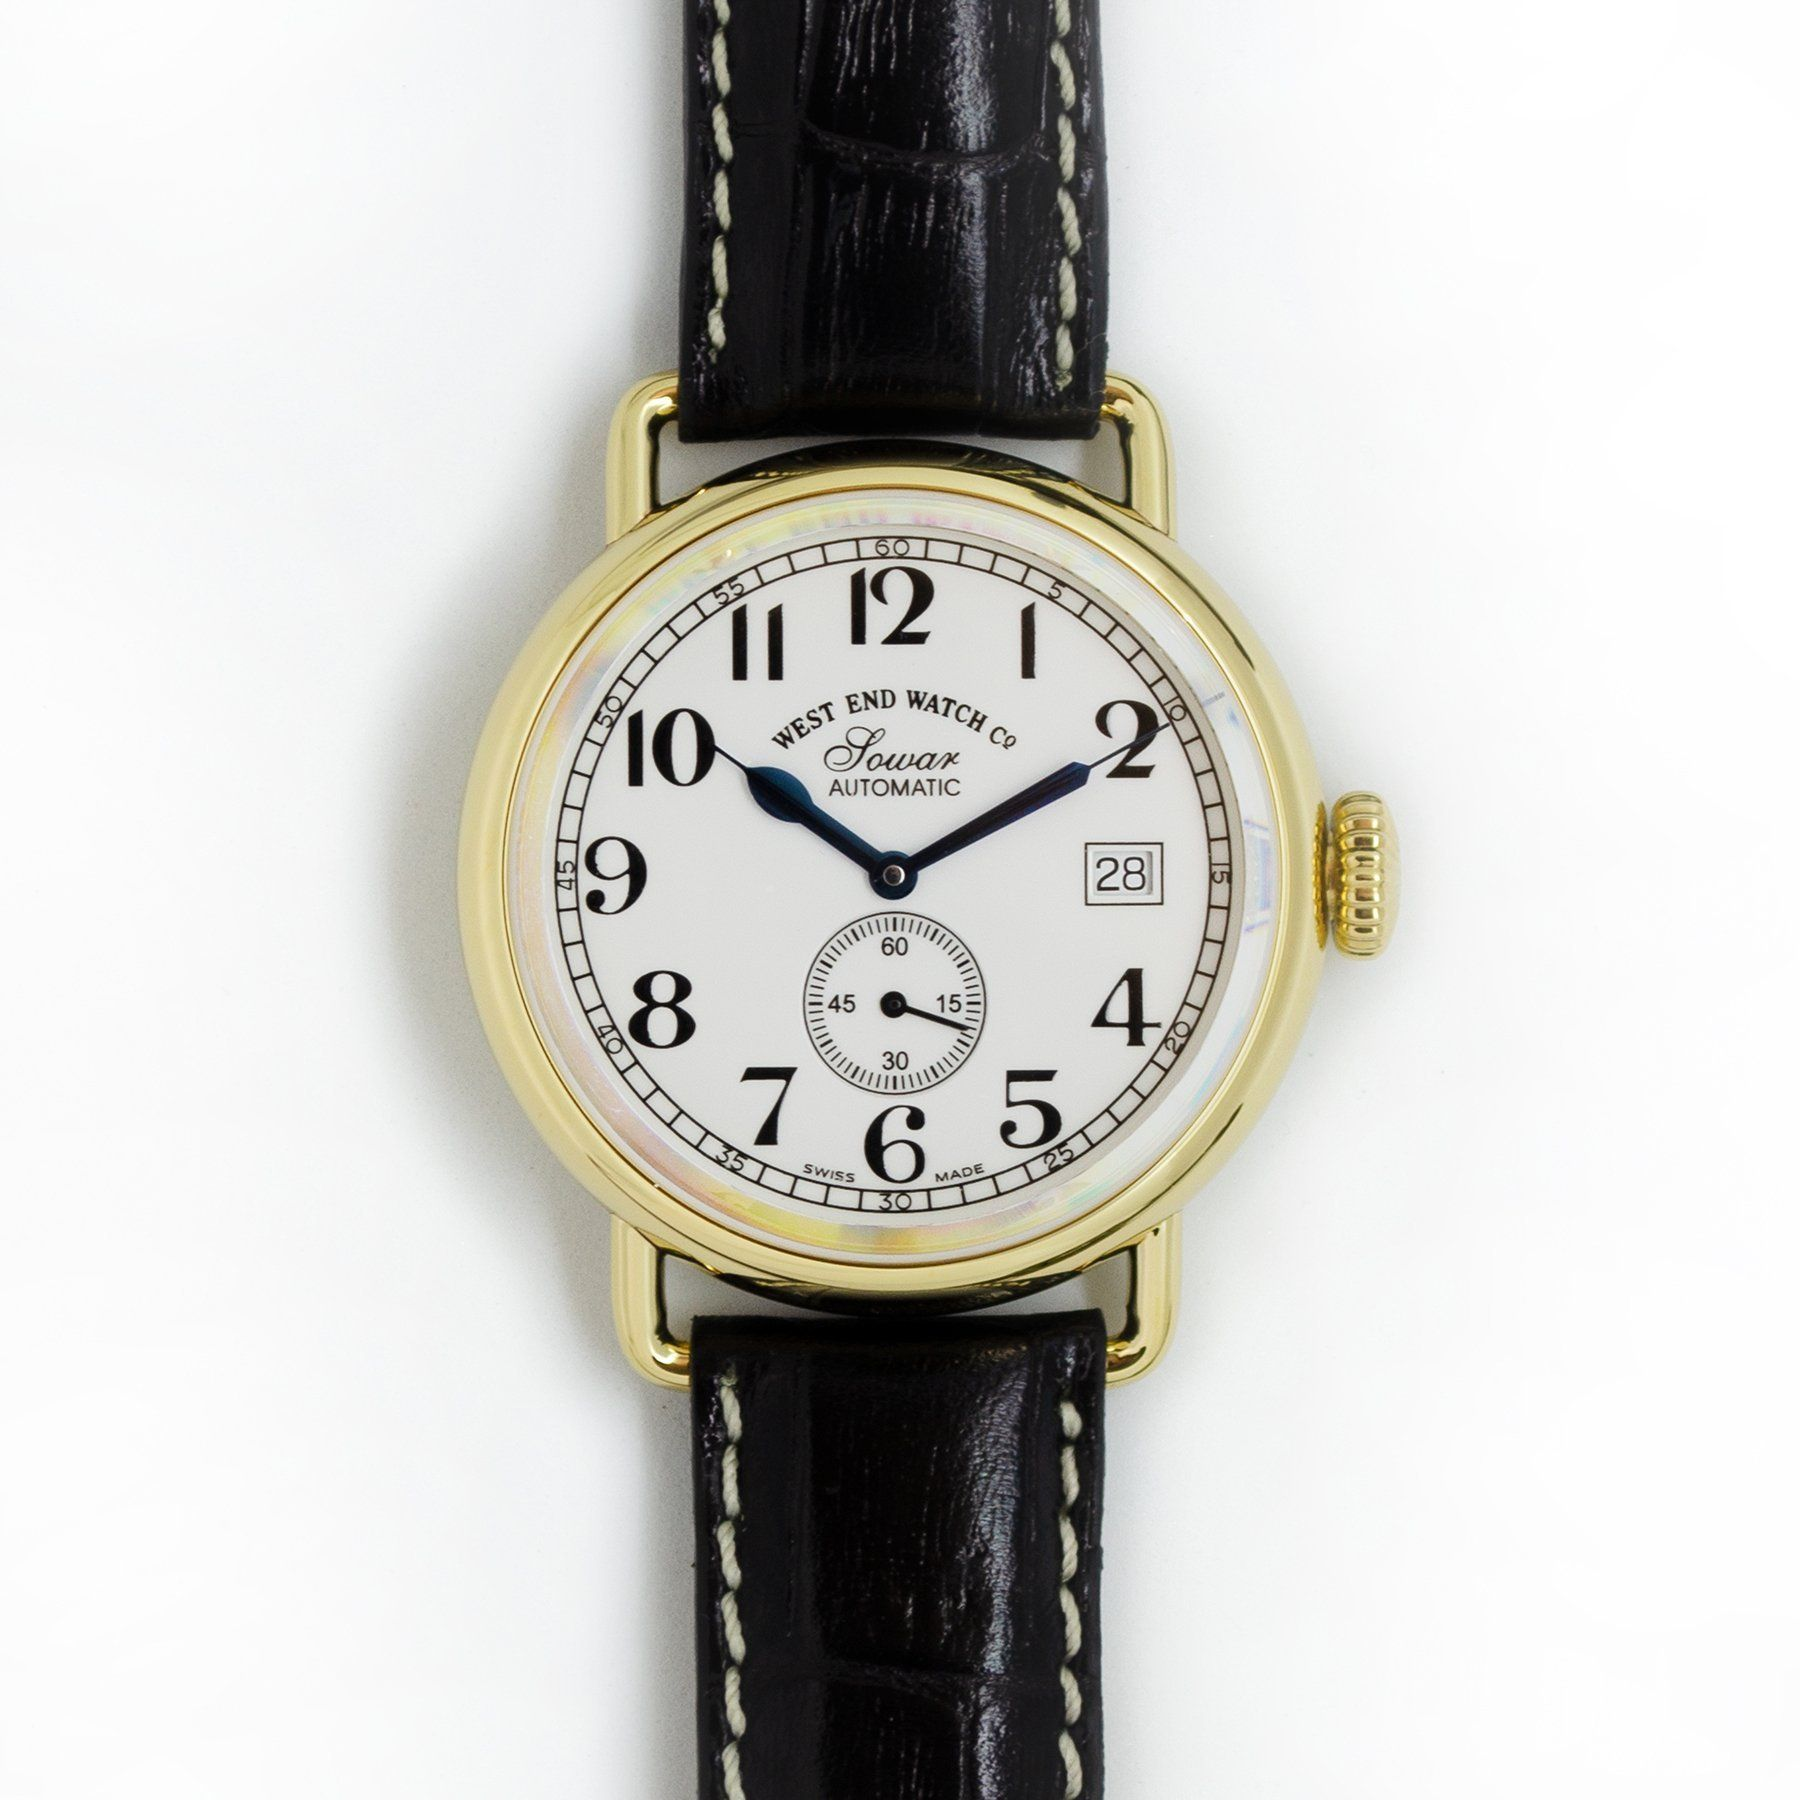 West End Watch Co. Sowar 1916 - White Dial, Gold PVD Case